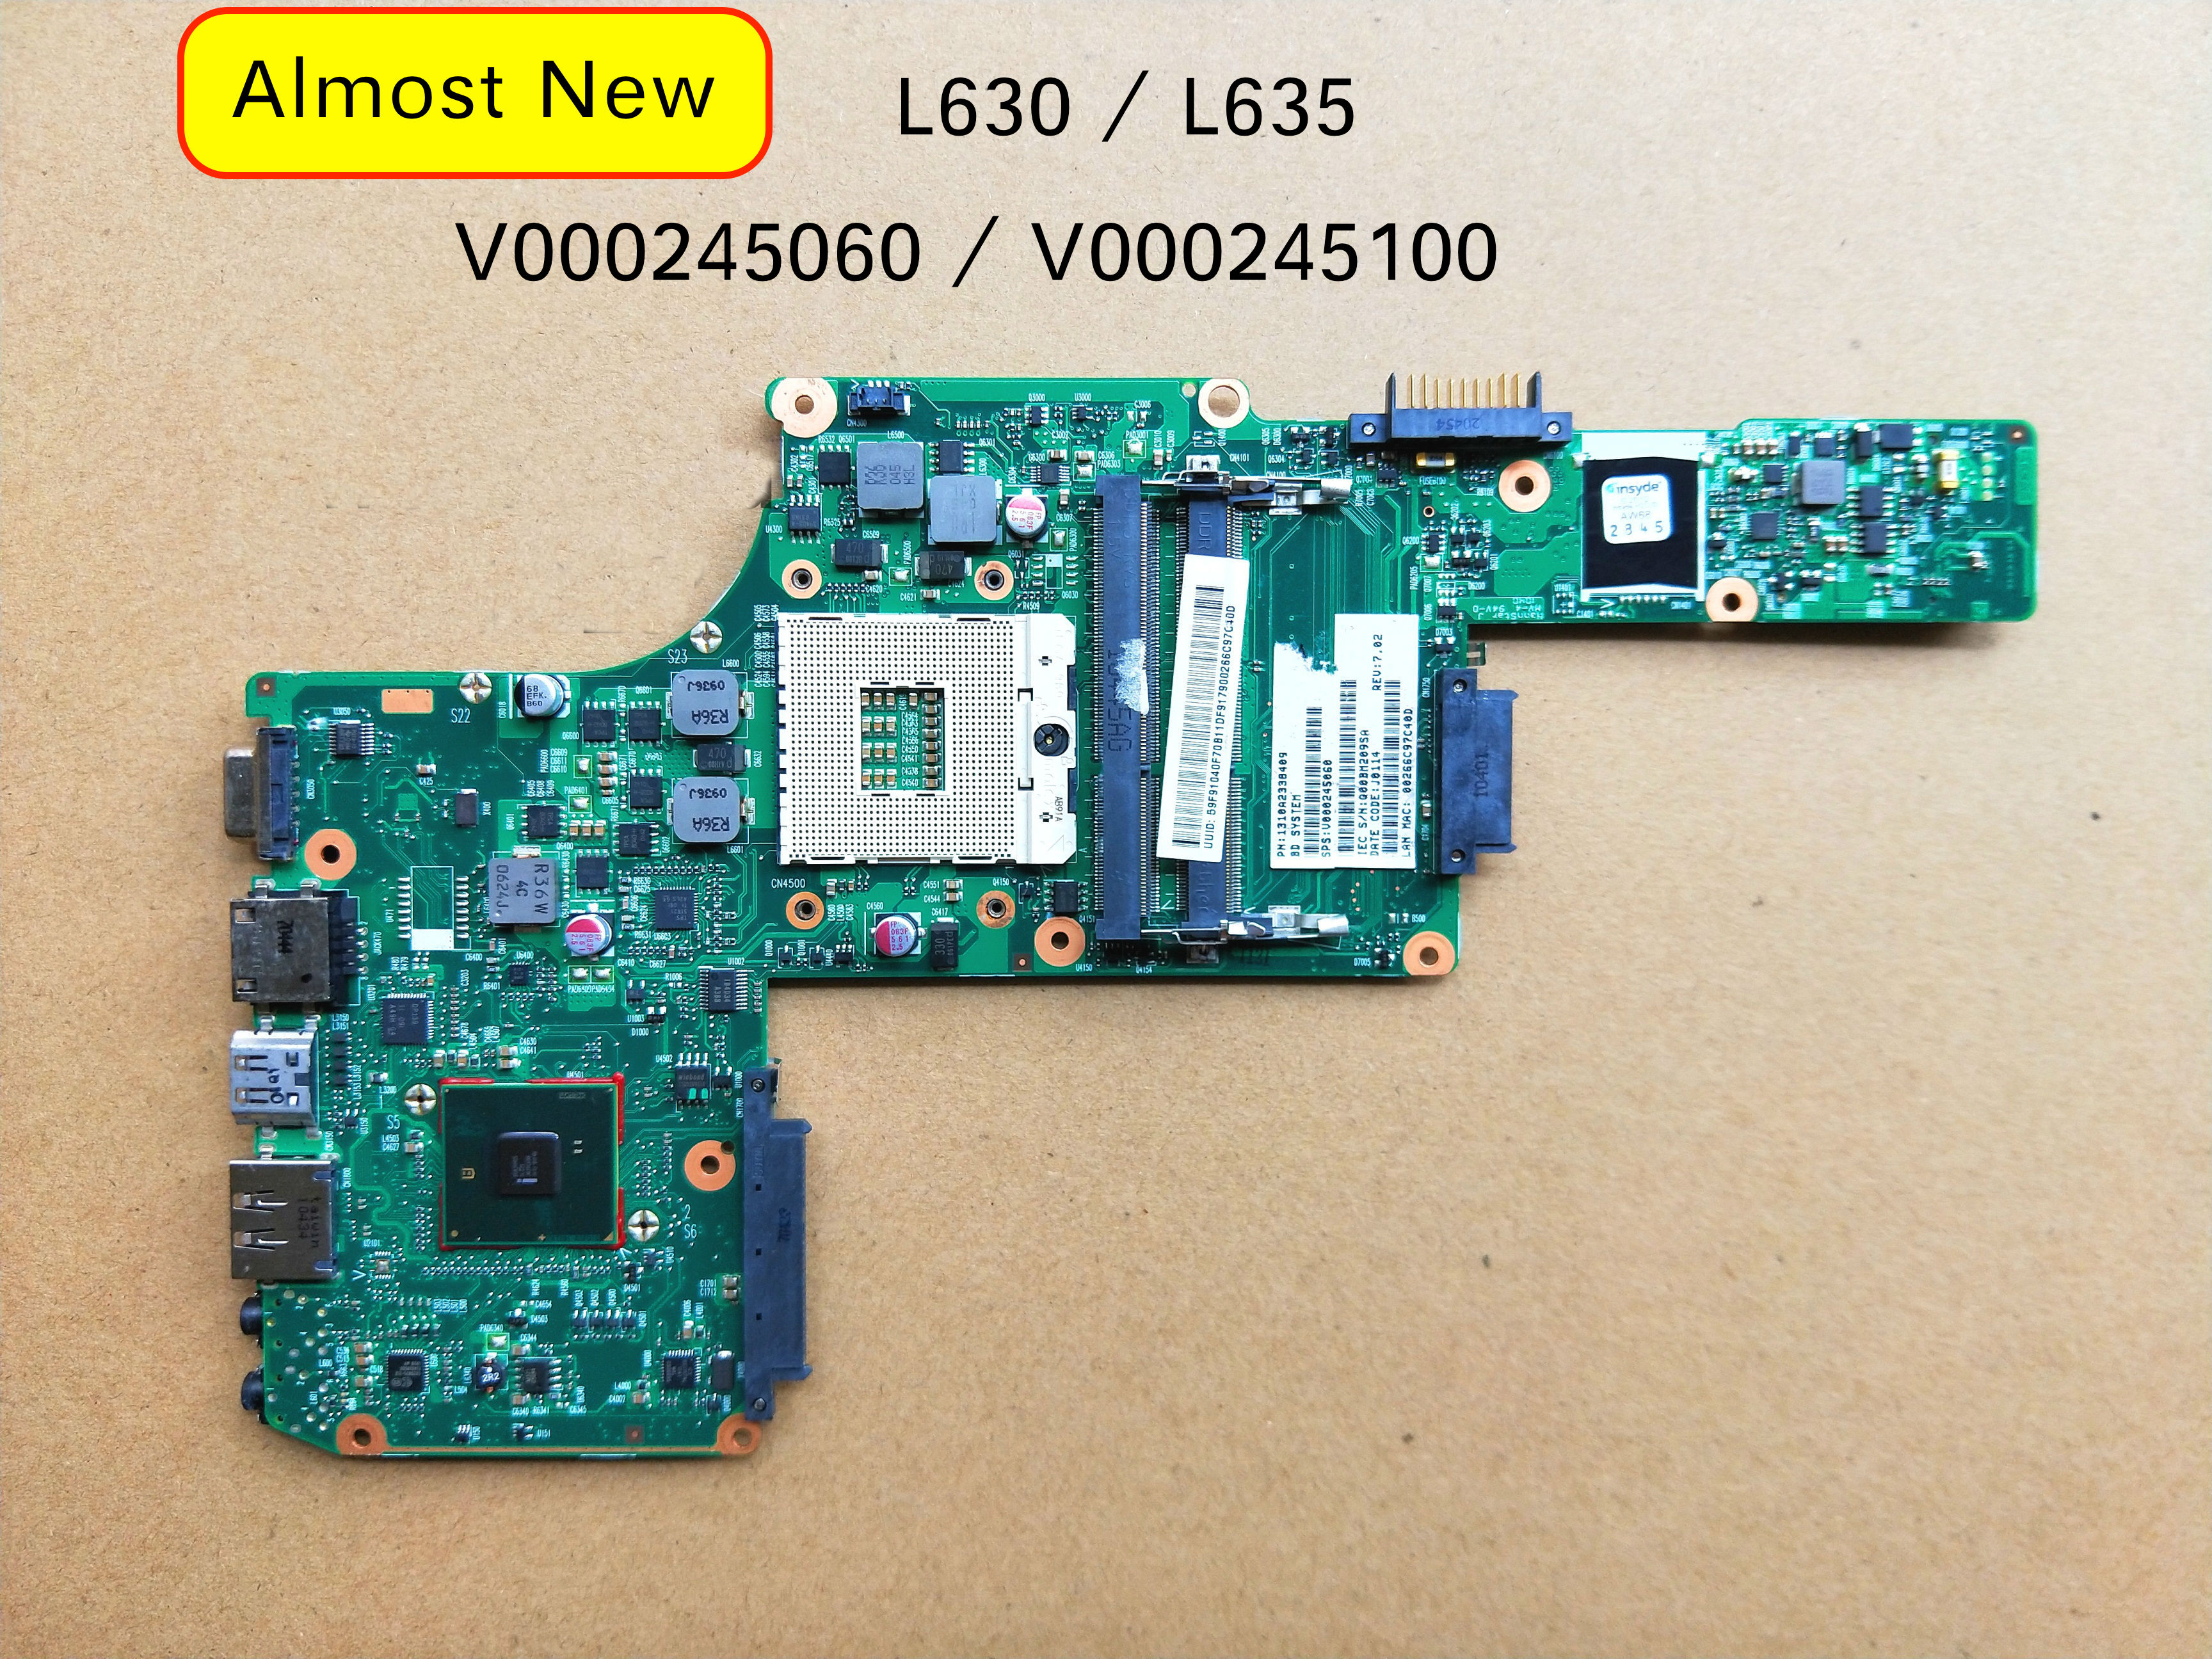 Working perfectly For TOSHIBA Satellite L630 L635 Laptop Motherboard V000245060 V000245100 1310A2338409 6050A2338402Working perfectly For TOSHIBA Satellite L630 L635 Laptop Motherboard V000245060 V000245100 1310A2338409 6050A2338402